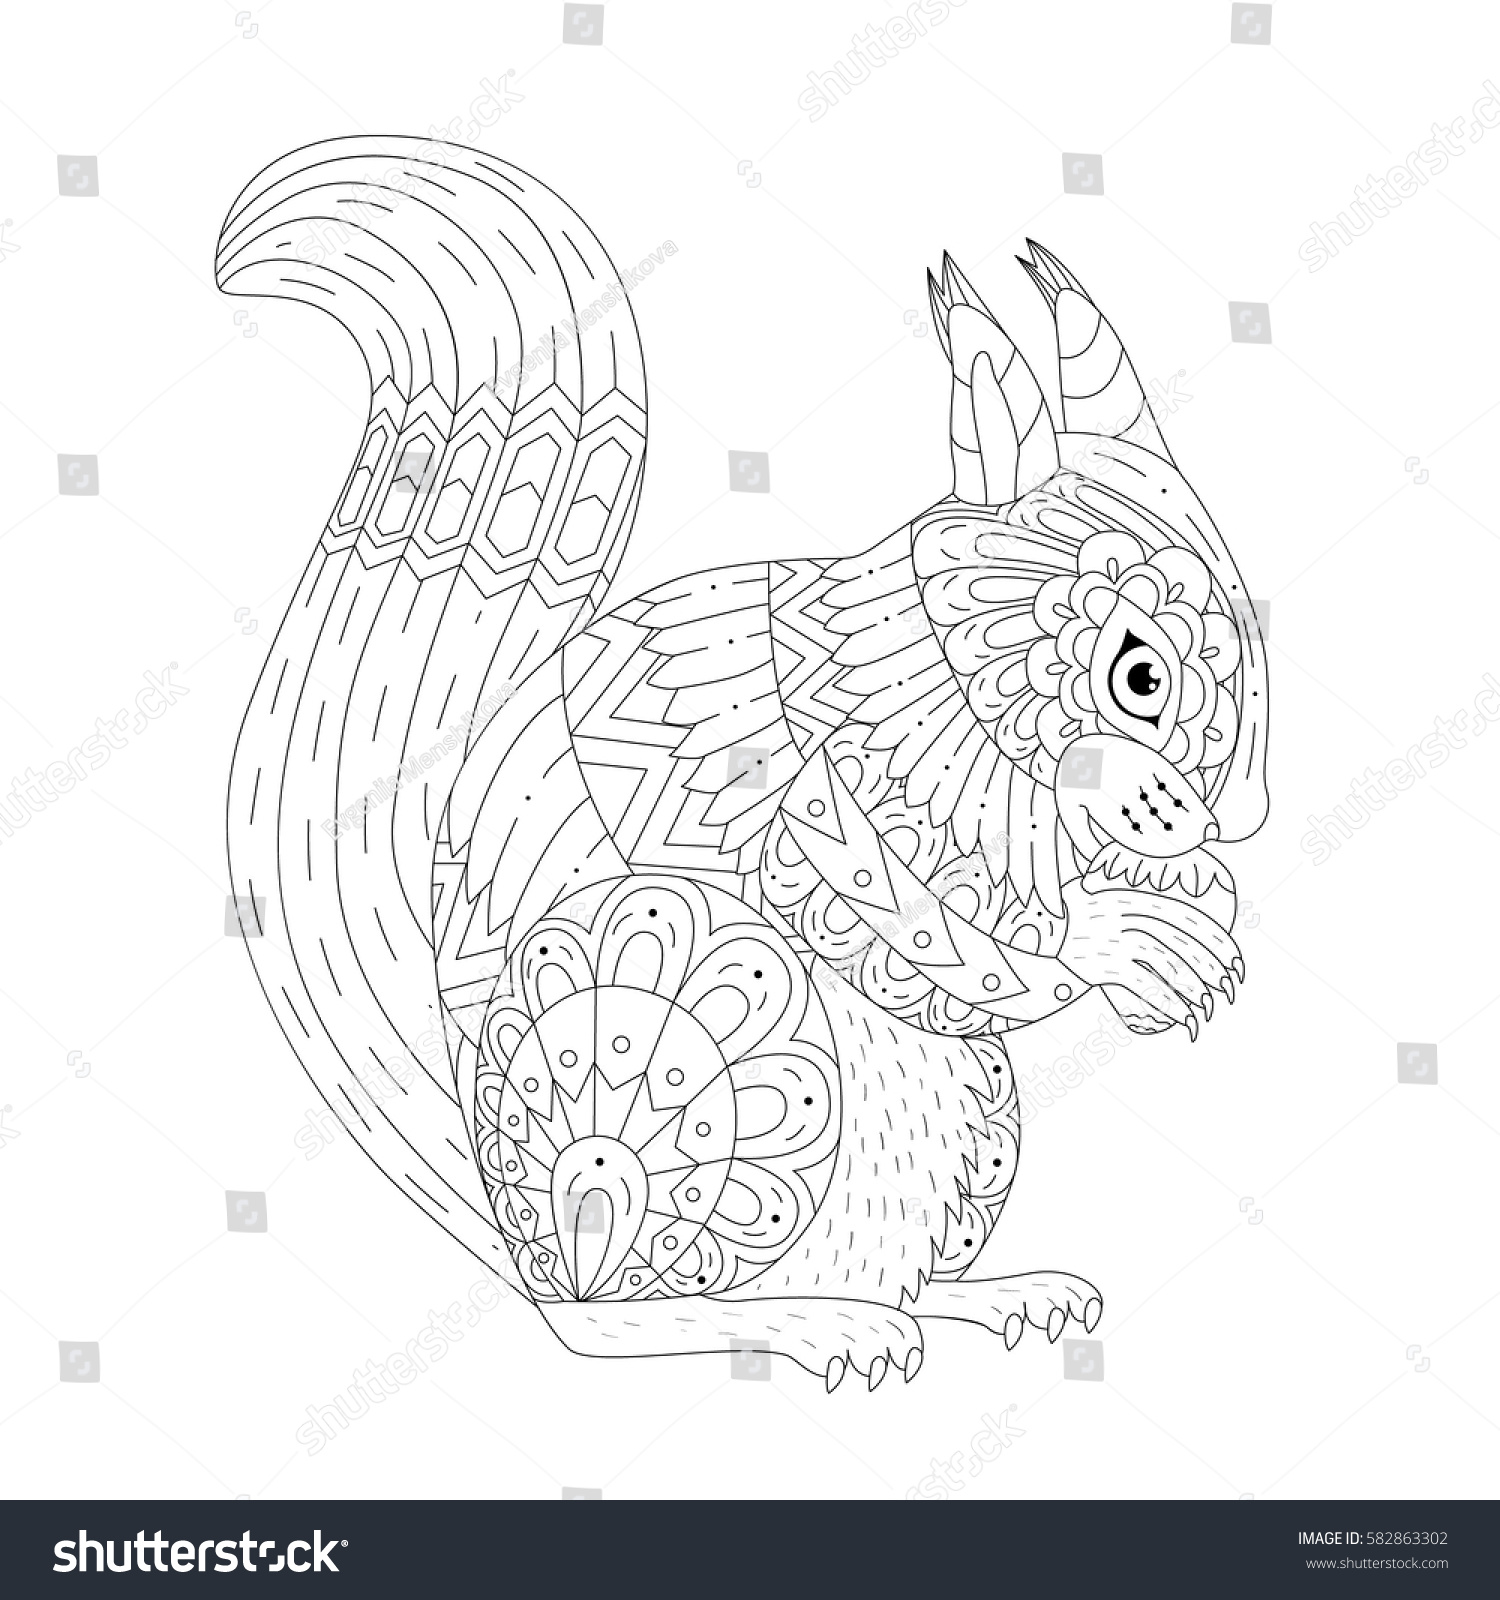 Vector Illustration Of The Squirrel Isolated Black And White Artwork In Ethnic Zentangle